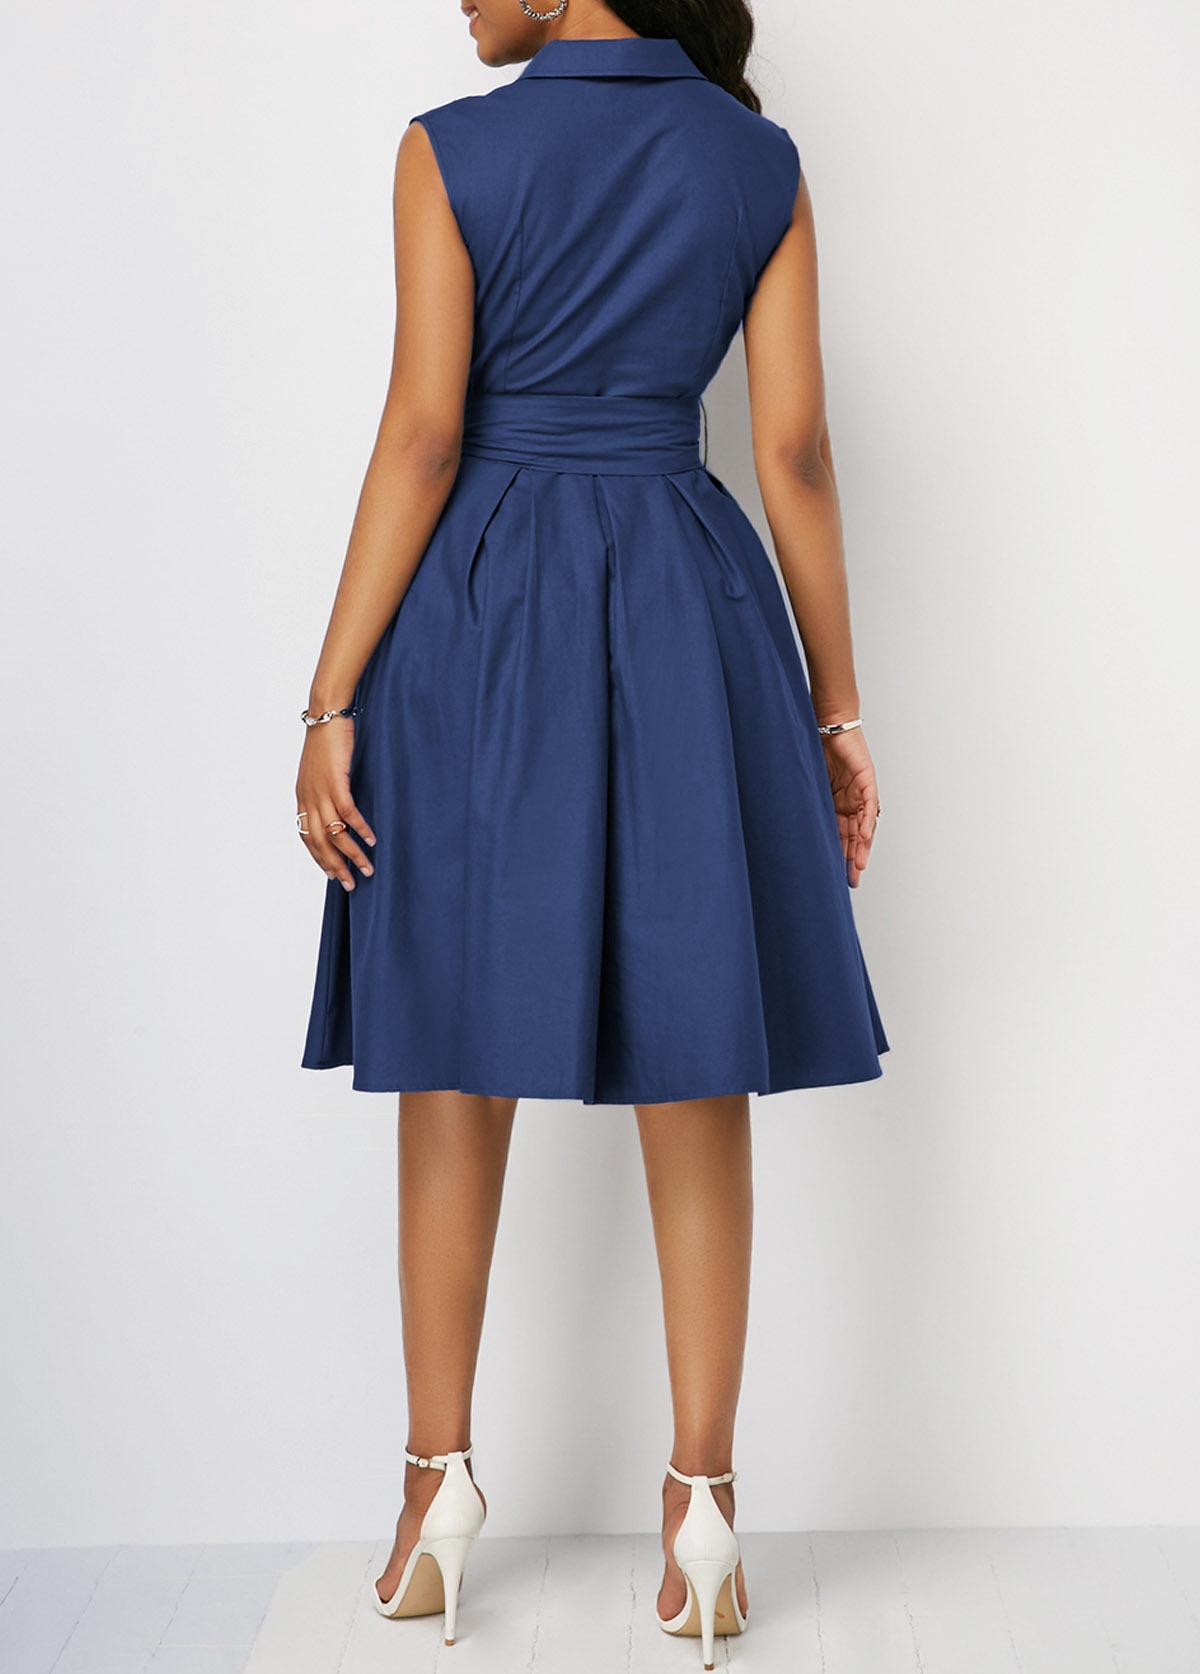 New European And American Explosion Models Solid Color Waist Sleeveless Lapel Lace-up A-line Commuter Dress Mid-length